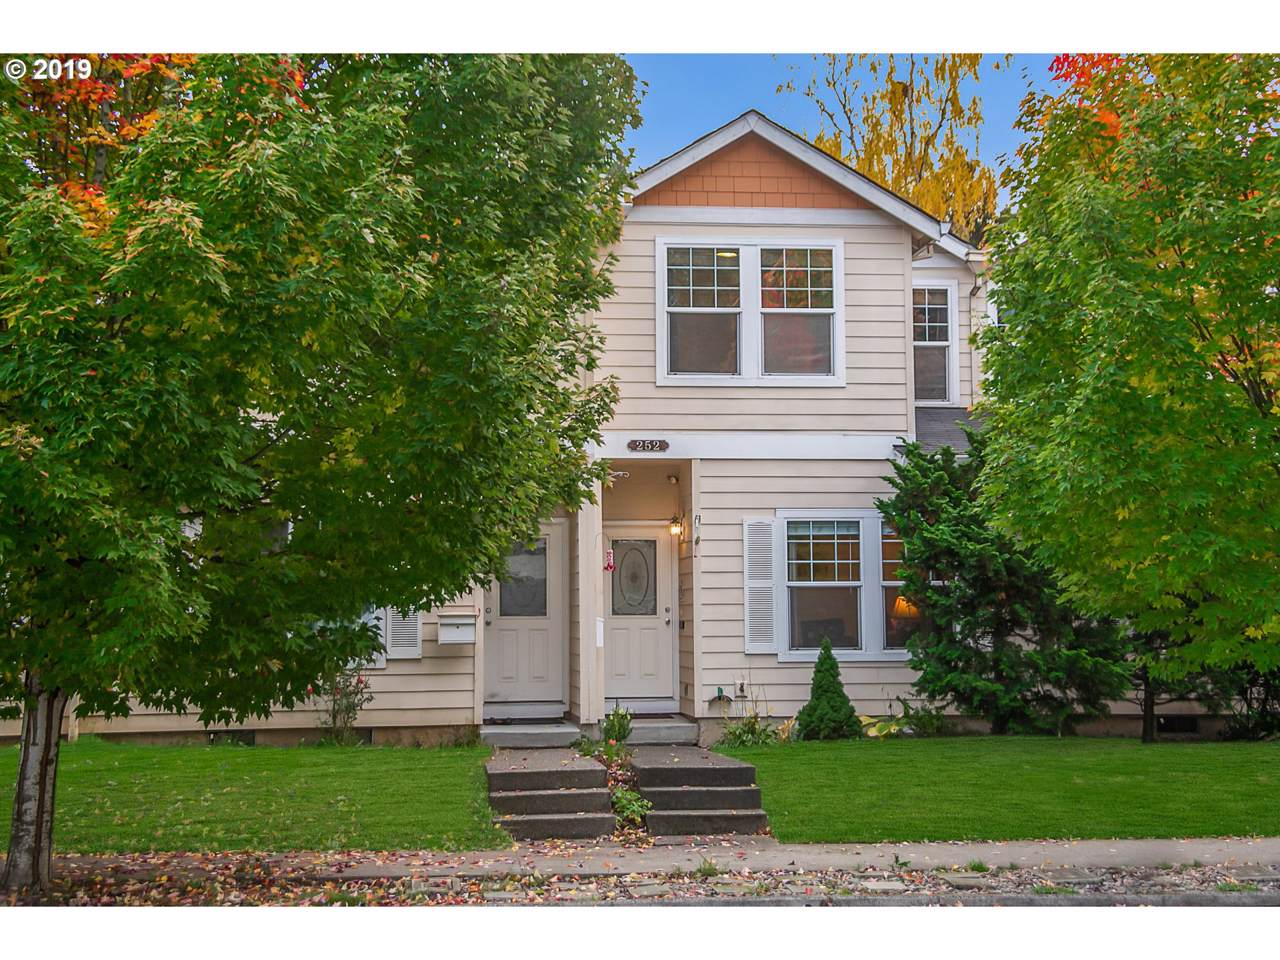 252 Connell Ave - Photo 1